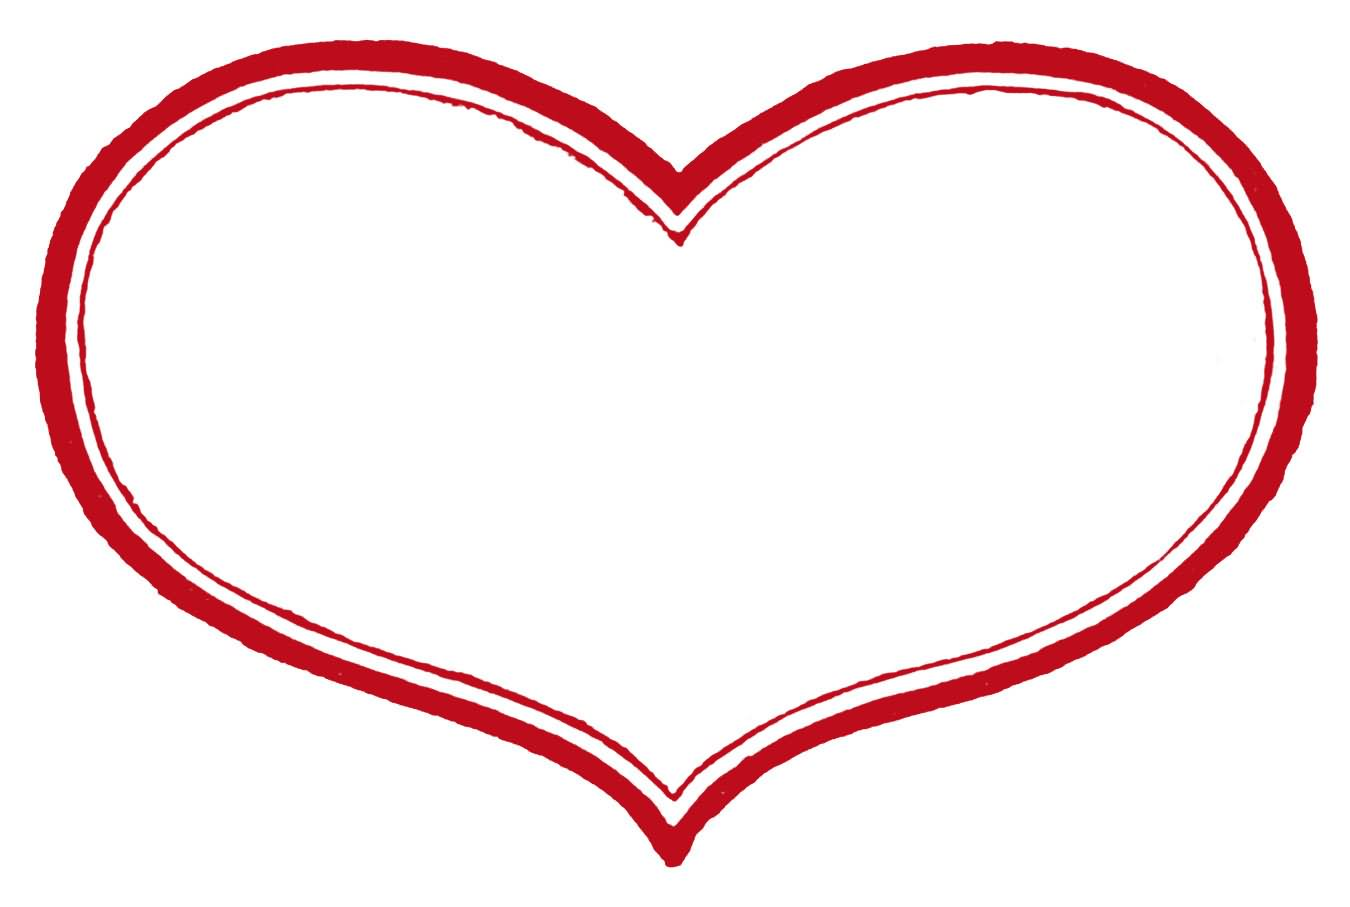 Heart-shaped clipart outlined #10